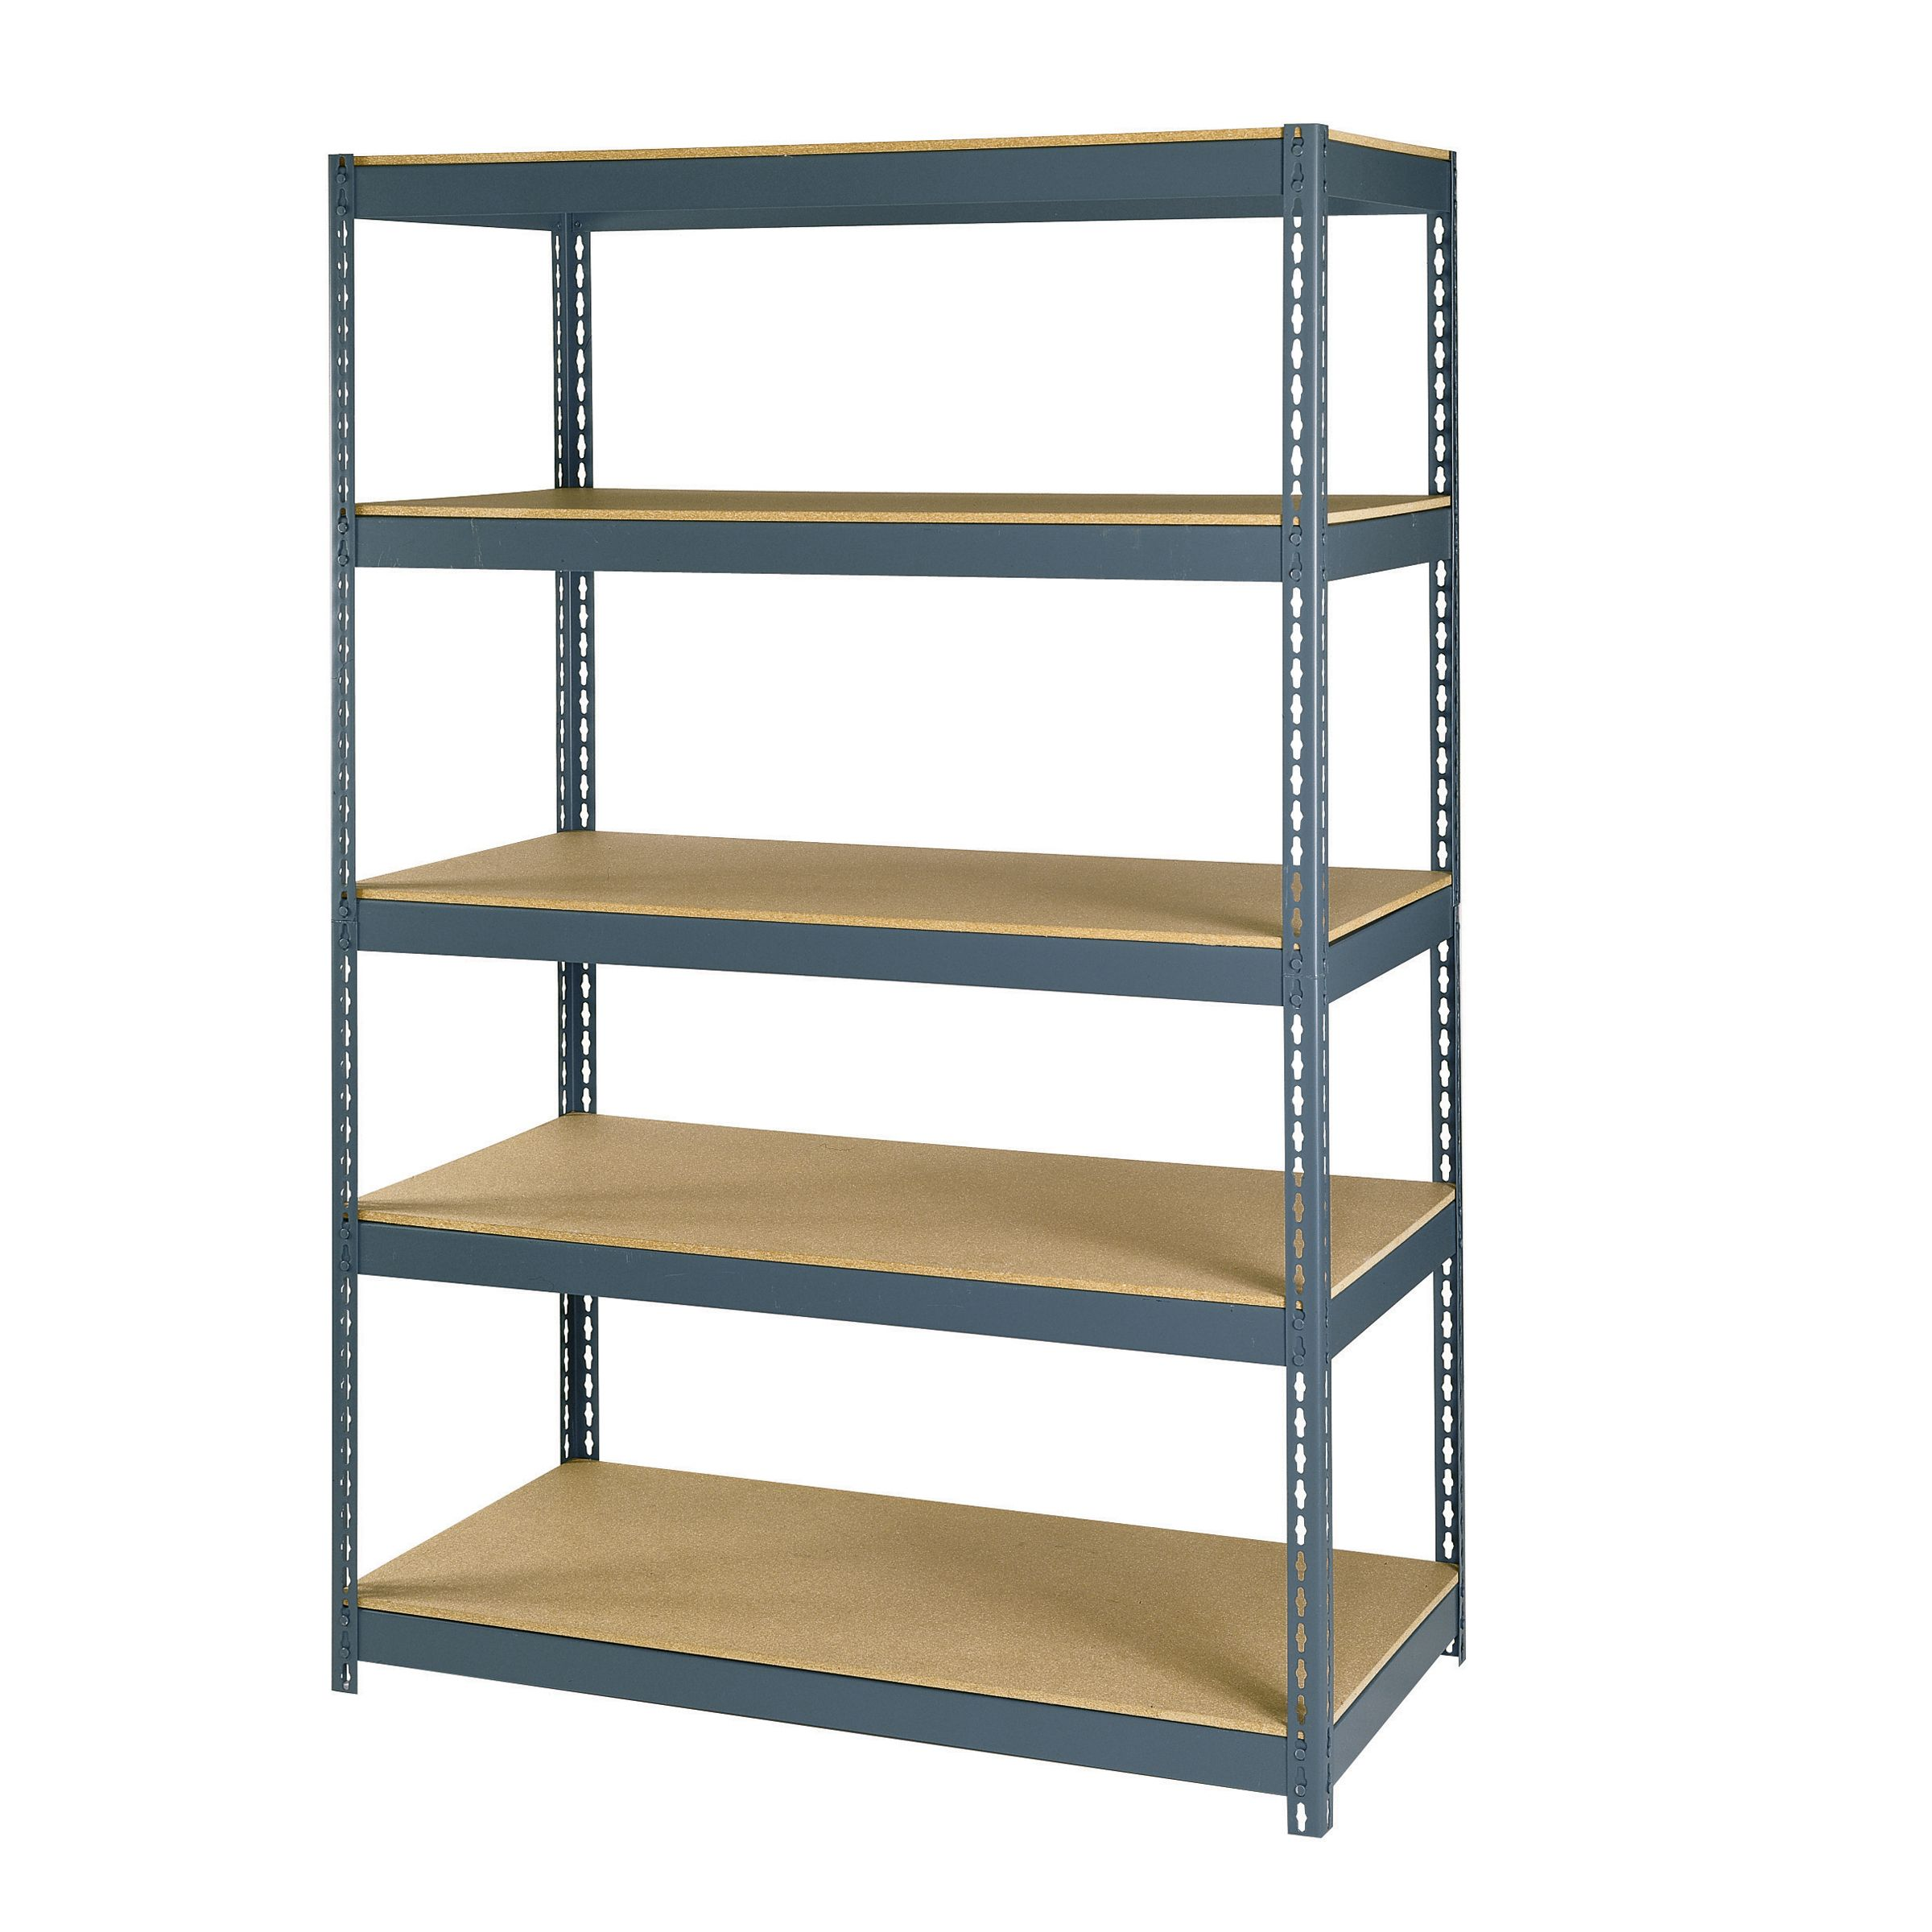 Gorilla Garage Racks Maxi Rack 72 Quot 5 Shelf Steel And Particleboard Storage Rack